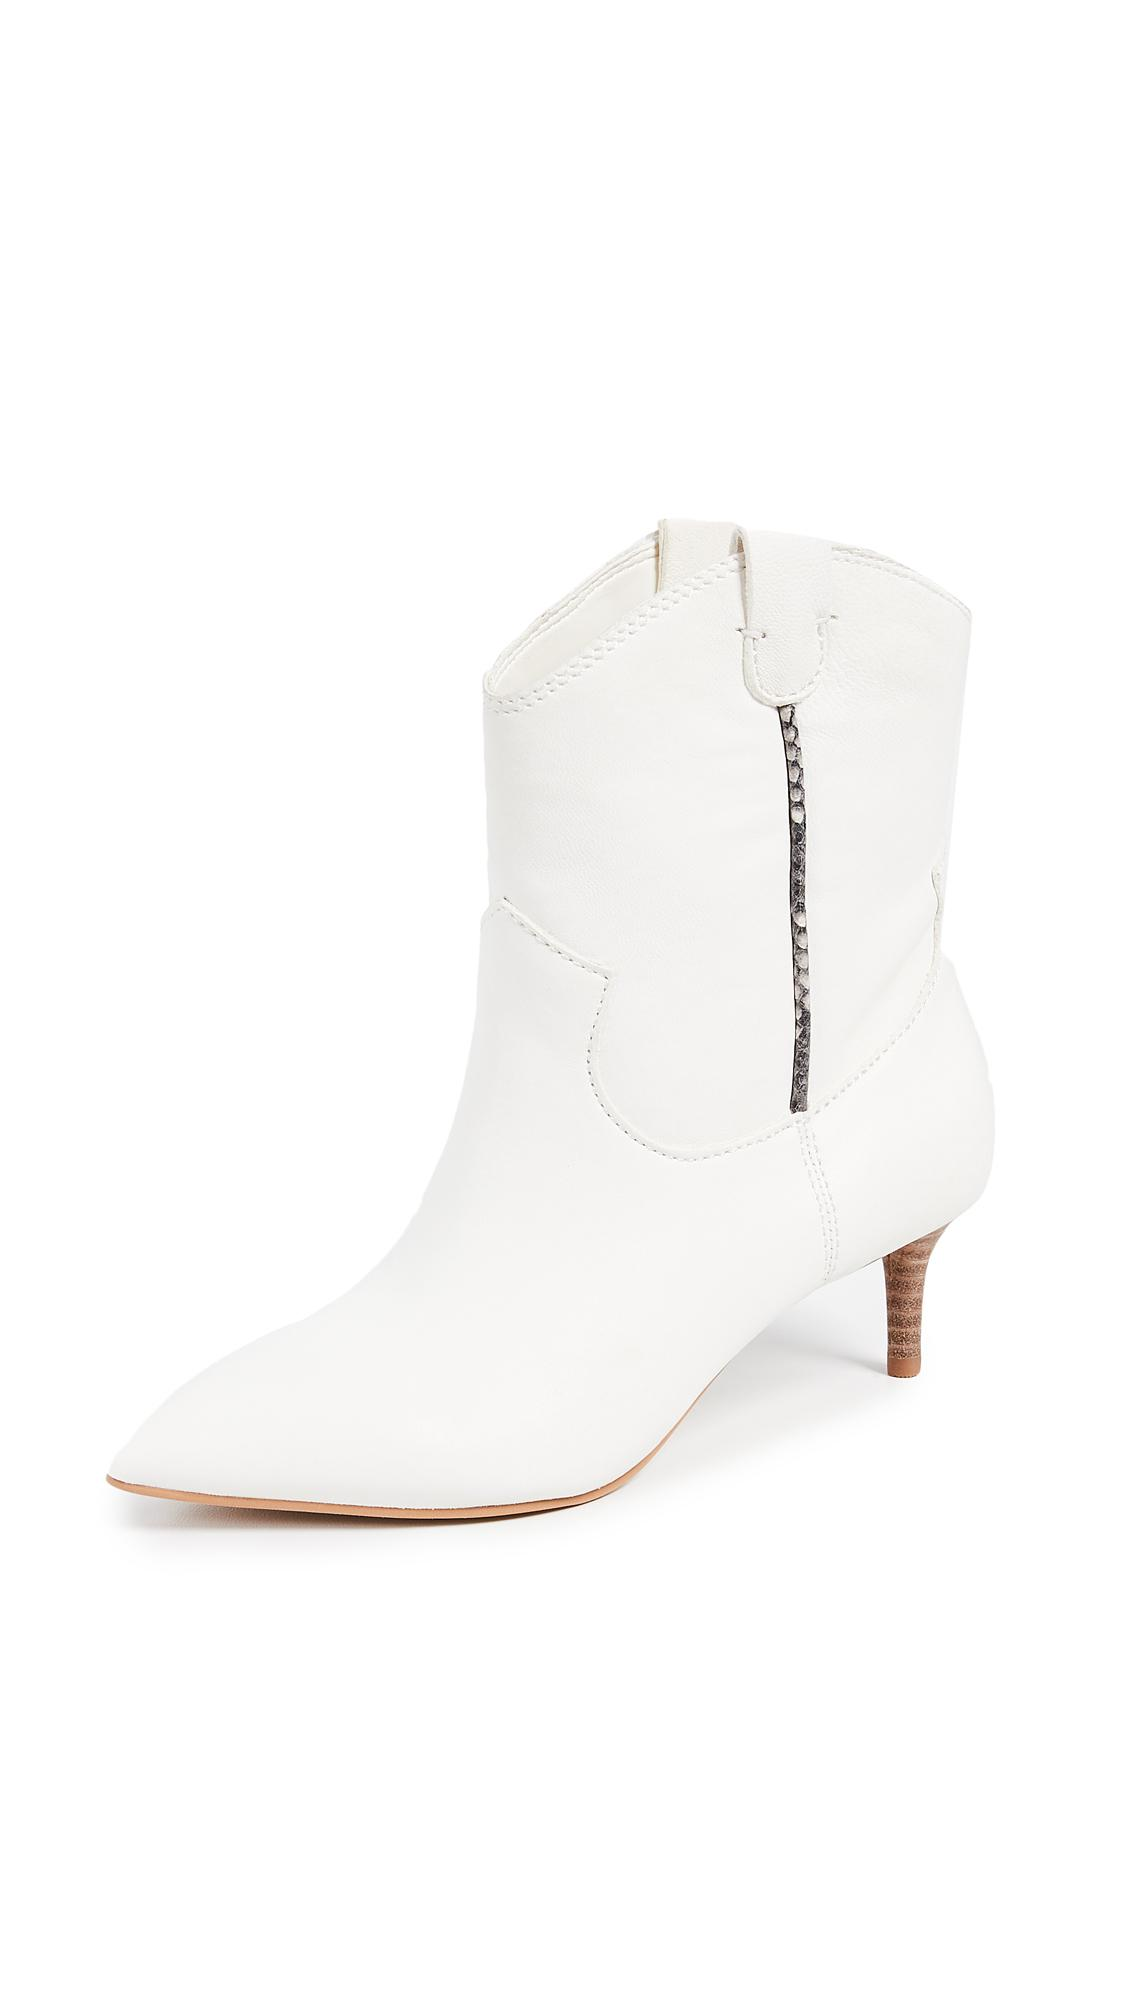 8ac95eb7287 Gallery. Previously sold at  Shopbop · Women s Dolce Vita Booties ...